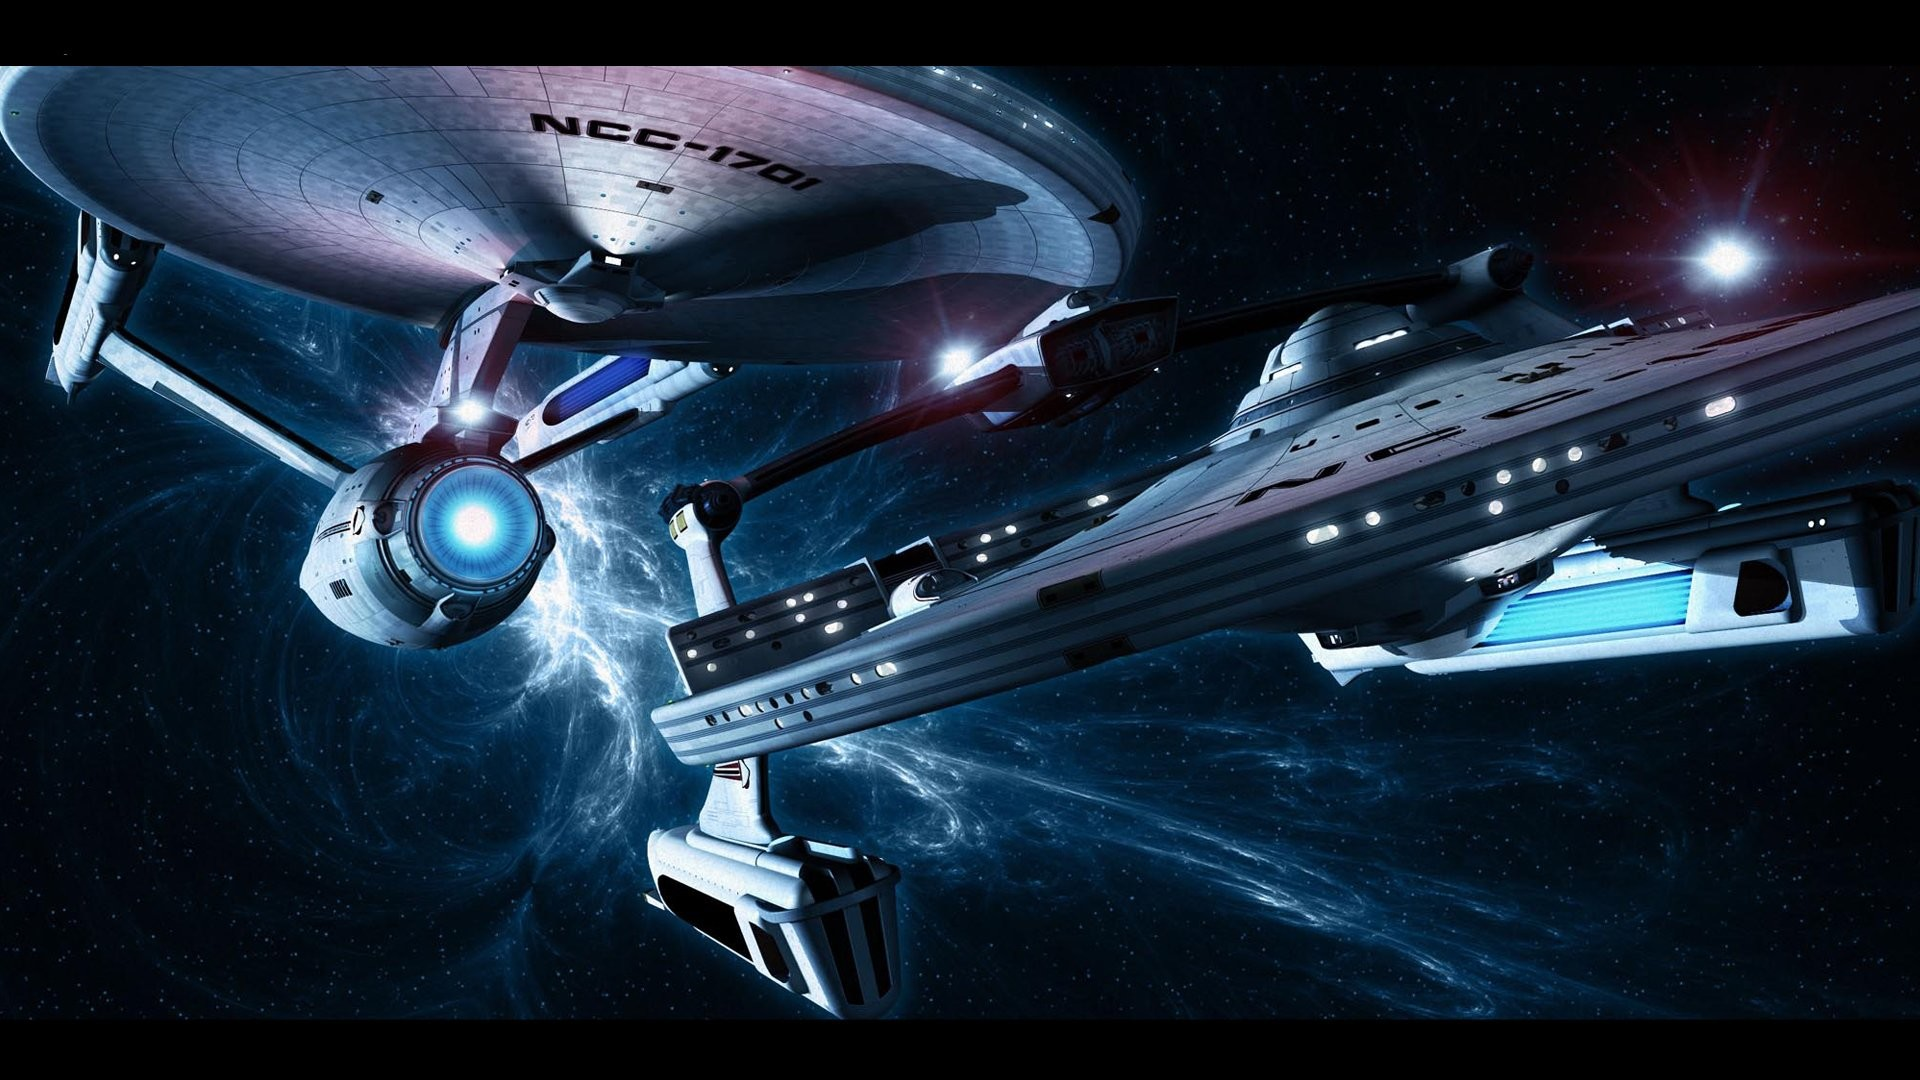 Star Trek Hd Wallpaper Wallpapertag